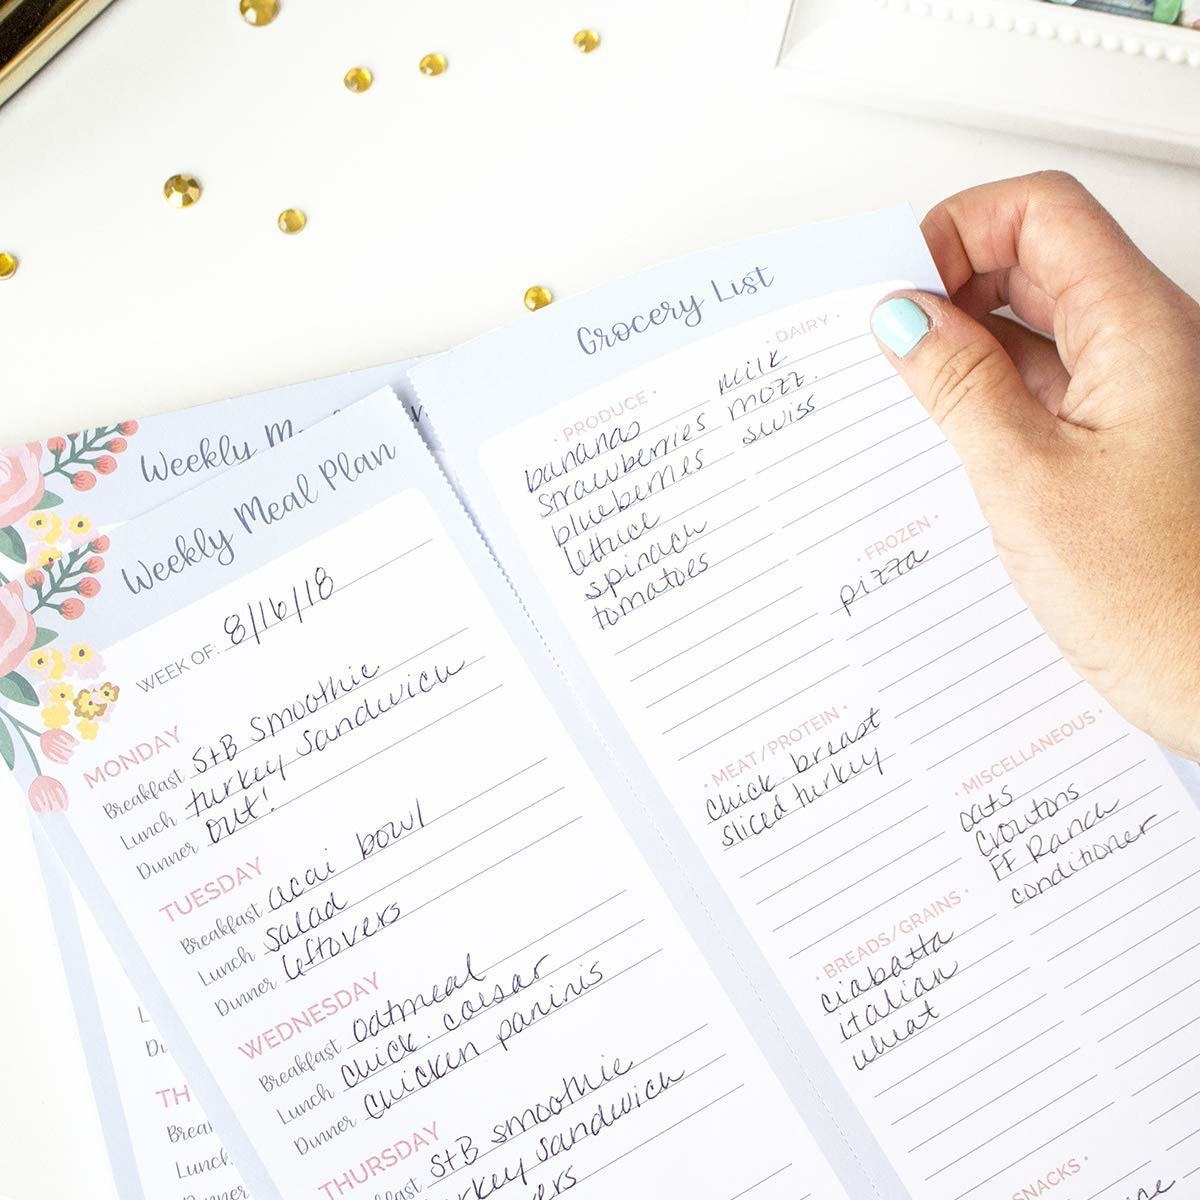 """Promising review: """"It's silly how much order a tablet of paper can bring to life. I use this to manage family schedules down to meal planning. I am usually filling multiple pages at once, but it allows me to look forward without being overwhelming. I love this product and very highly recommend it. I have even given away a few pages for friends to try!"""" —Amazon CustomerGet it from Amazon for $11.95."""